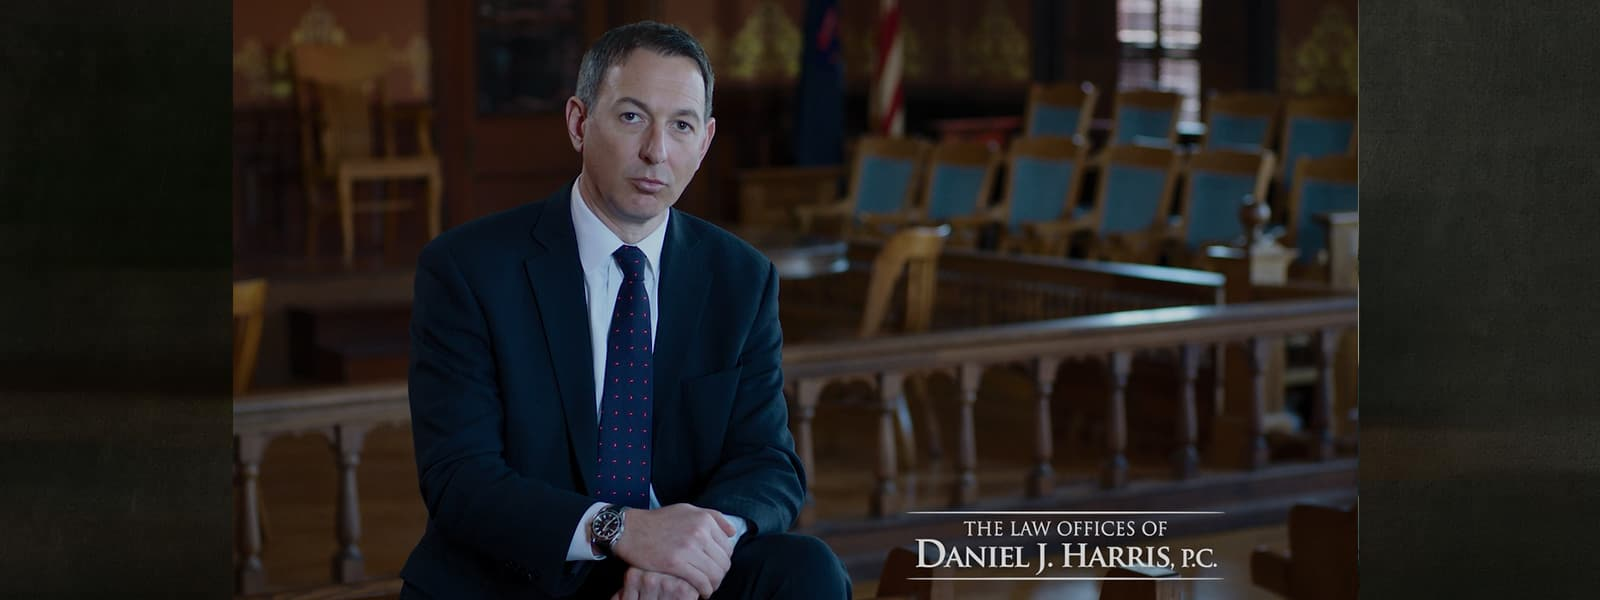 Accident Attorneys Petoskey MI | The Law Offices of Daniel J. Harris, P.C.